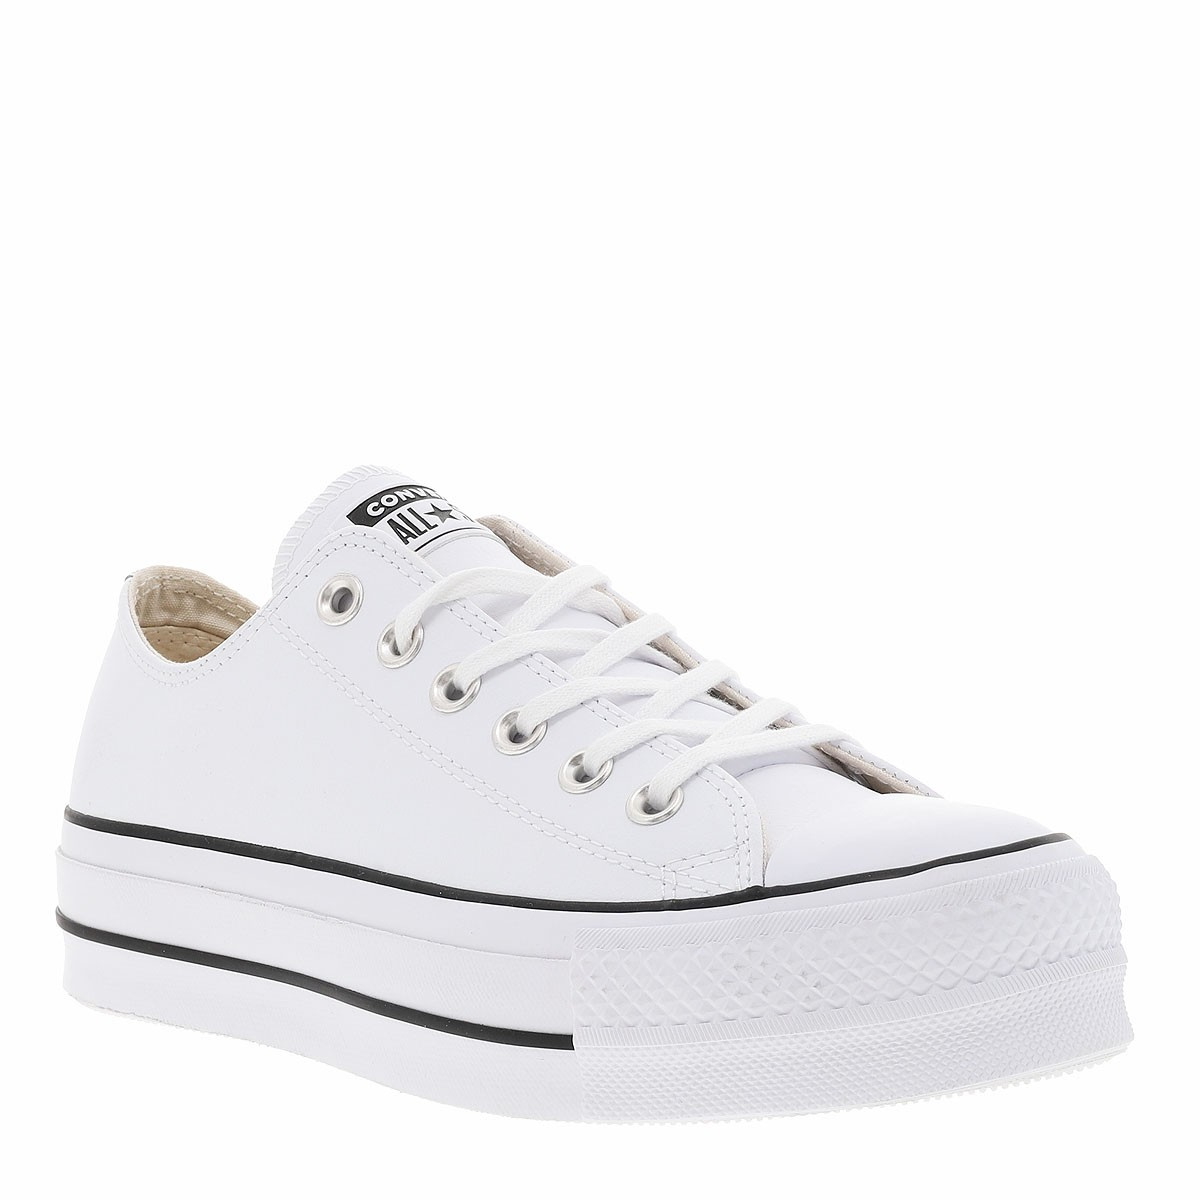 converse femmes blanches montantes